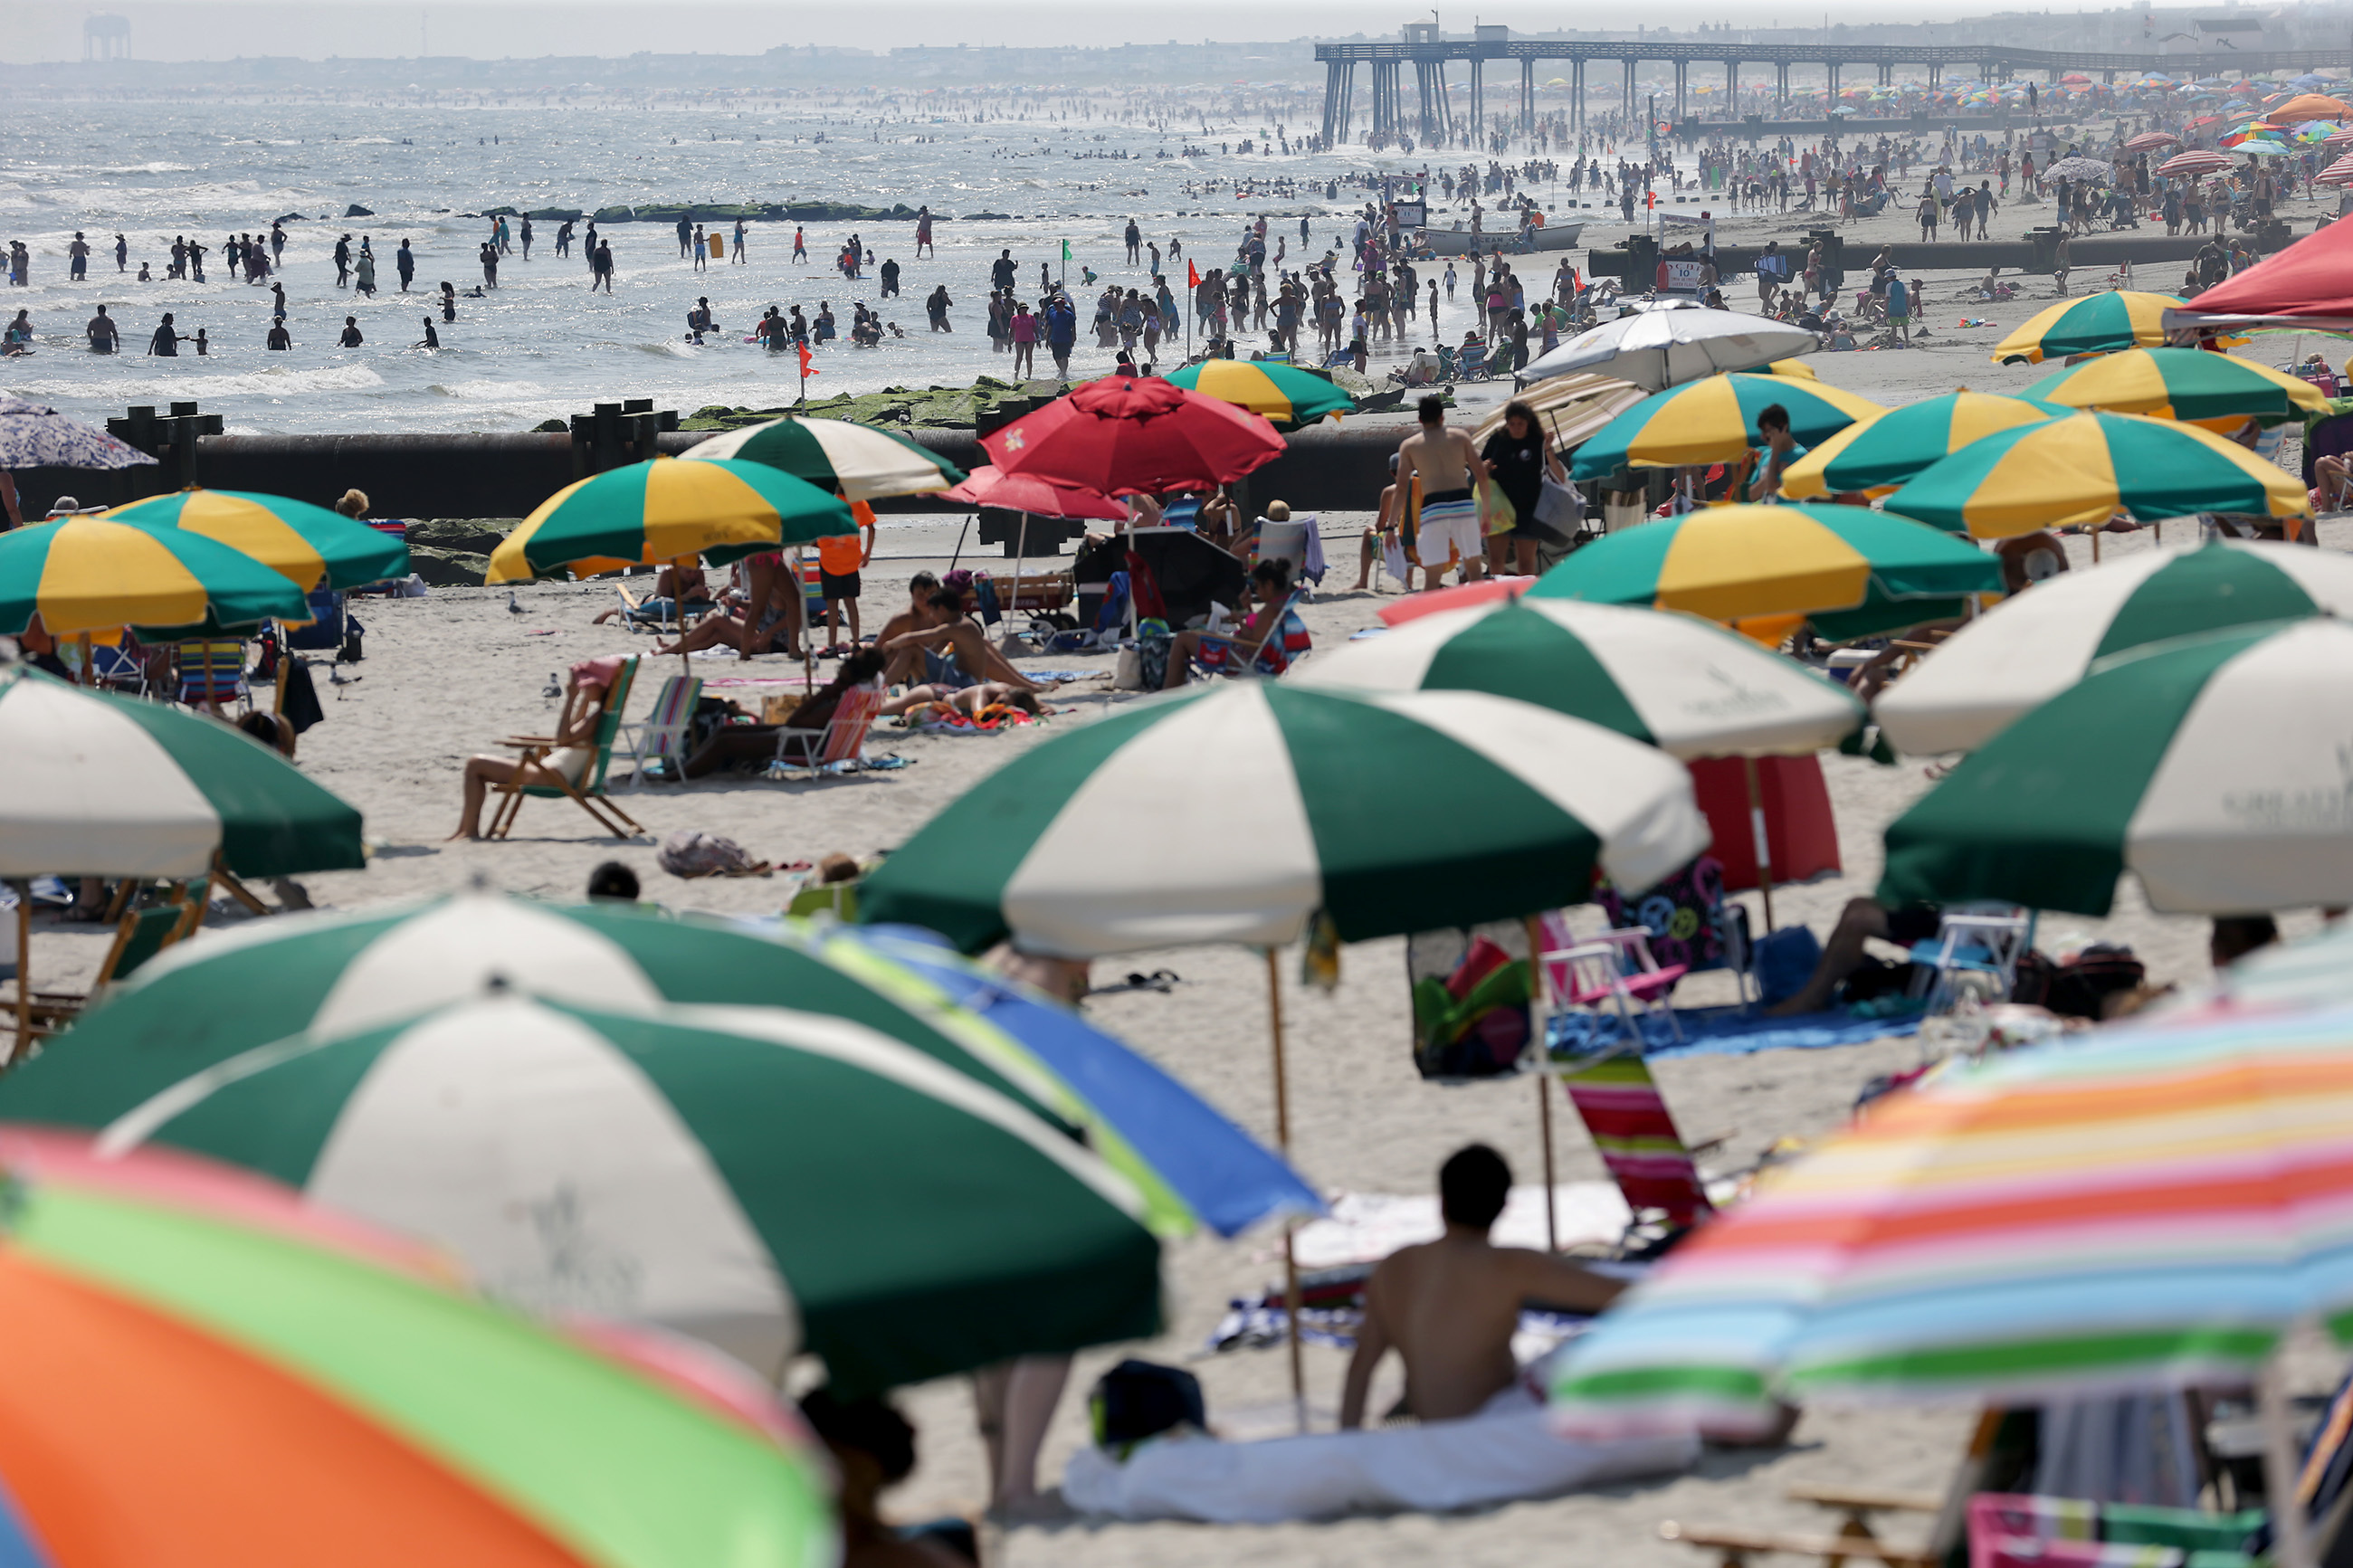 The beach at 9th Street was crowded as summer winds down in Ocean City, NJ.